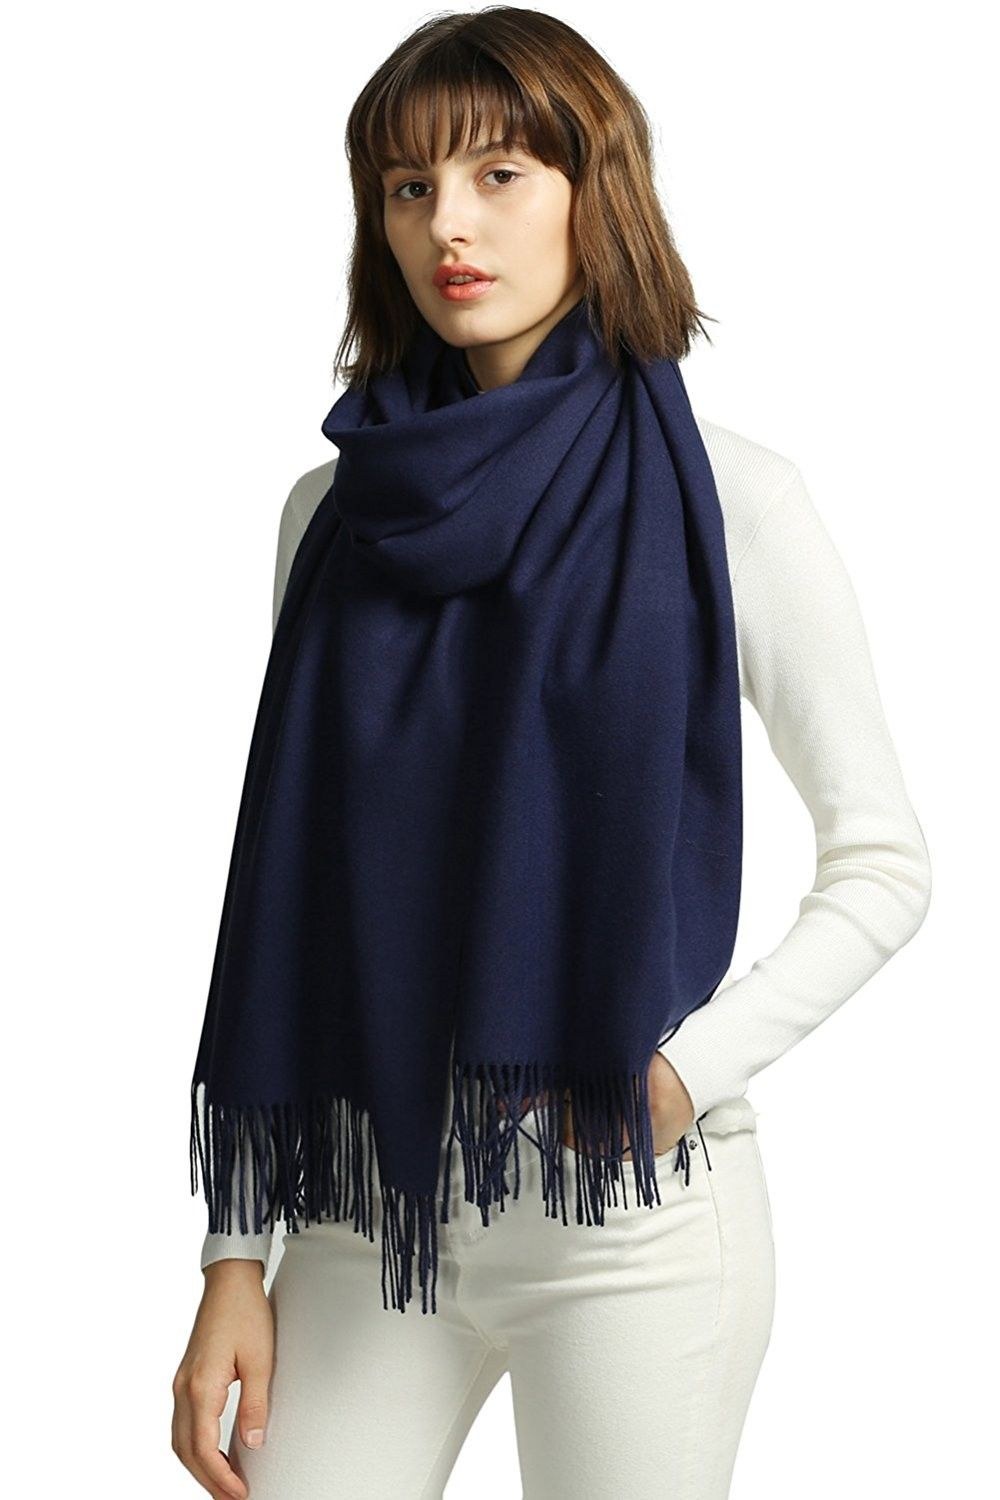 b826244ae Womens Large Soft Cashmere Feel Pashmina Shawls Wraps Light Scarf - Navy -  C4185DTEW2U - Scarves